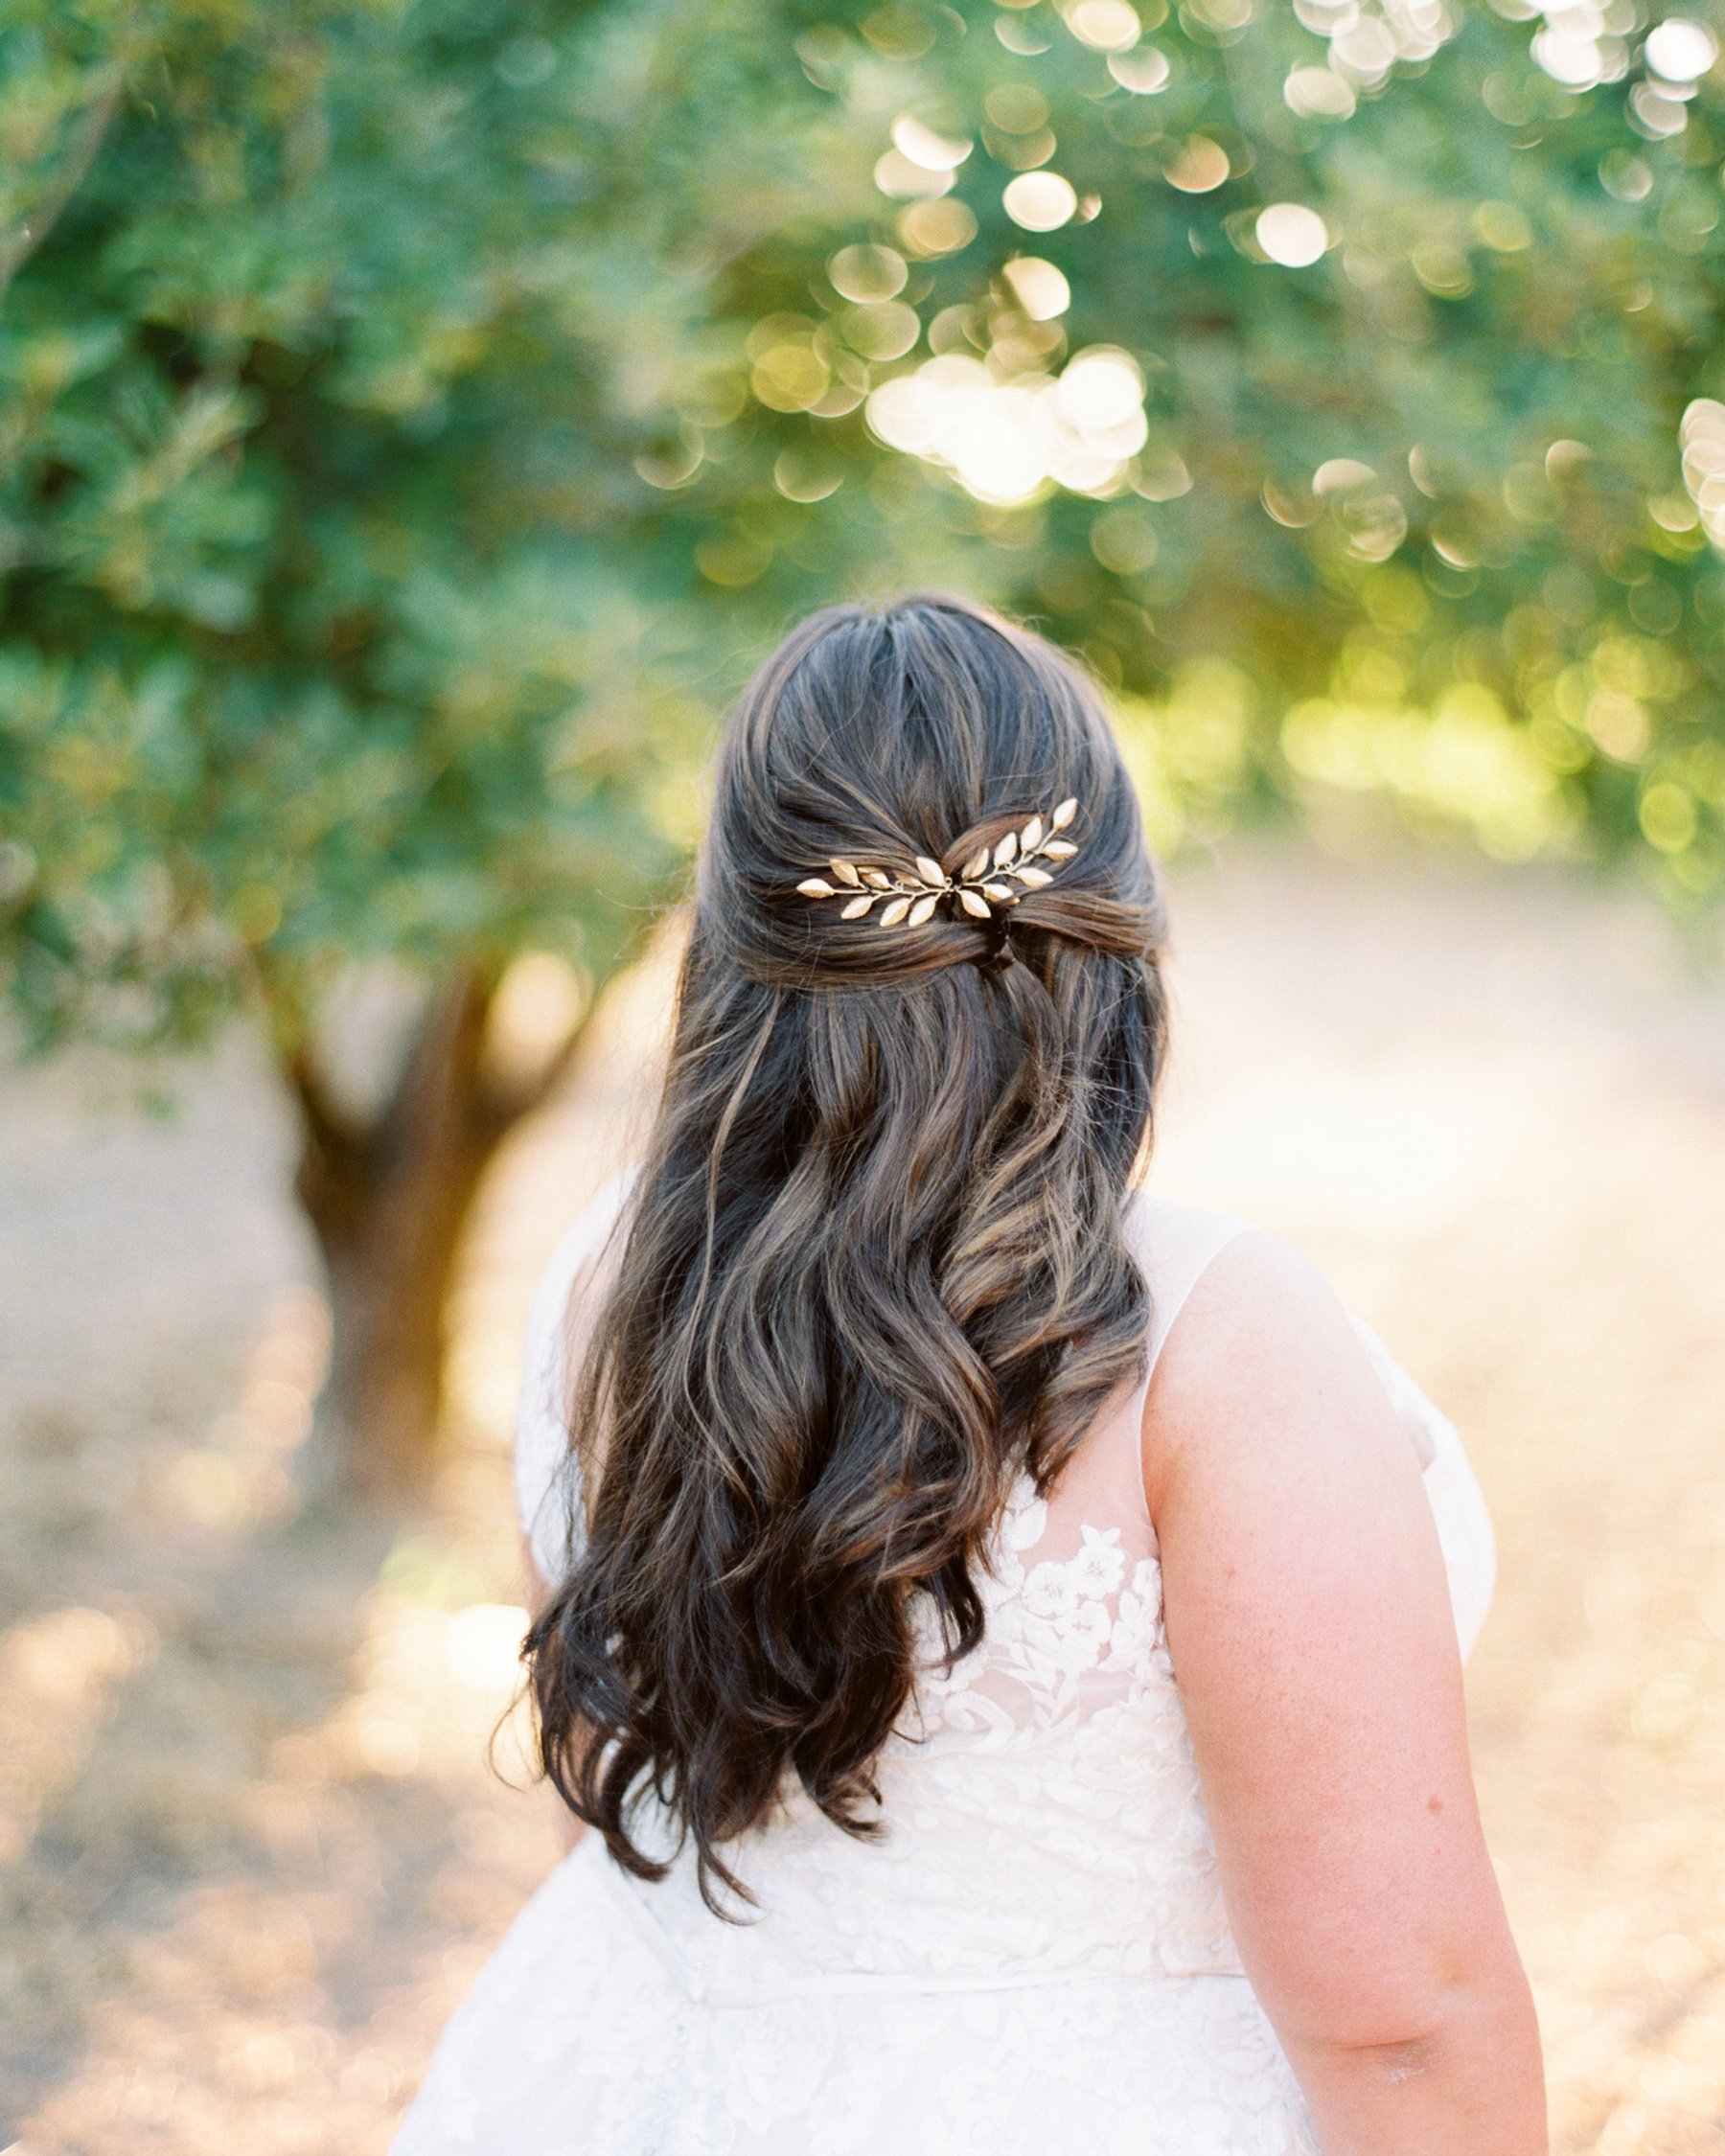 11 Beautiful Wedding Hairstyles Down For Brides And: Half-Up, Half-Down Wedding Hairstyles We Love